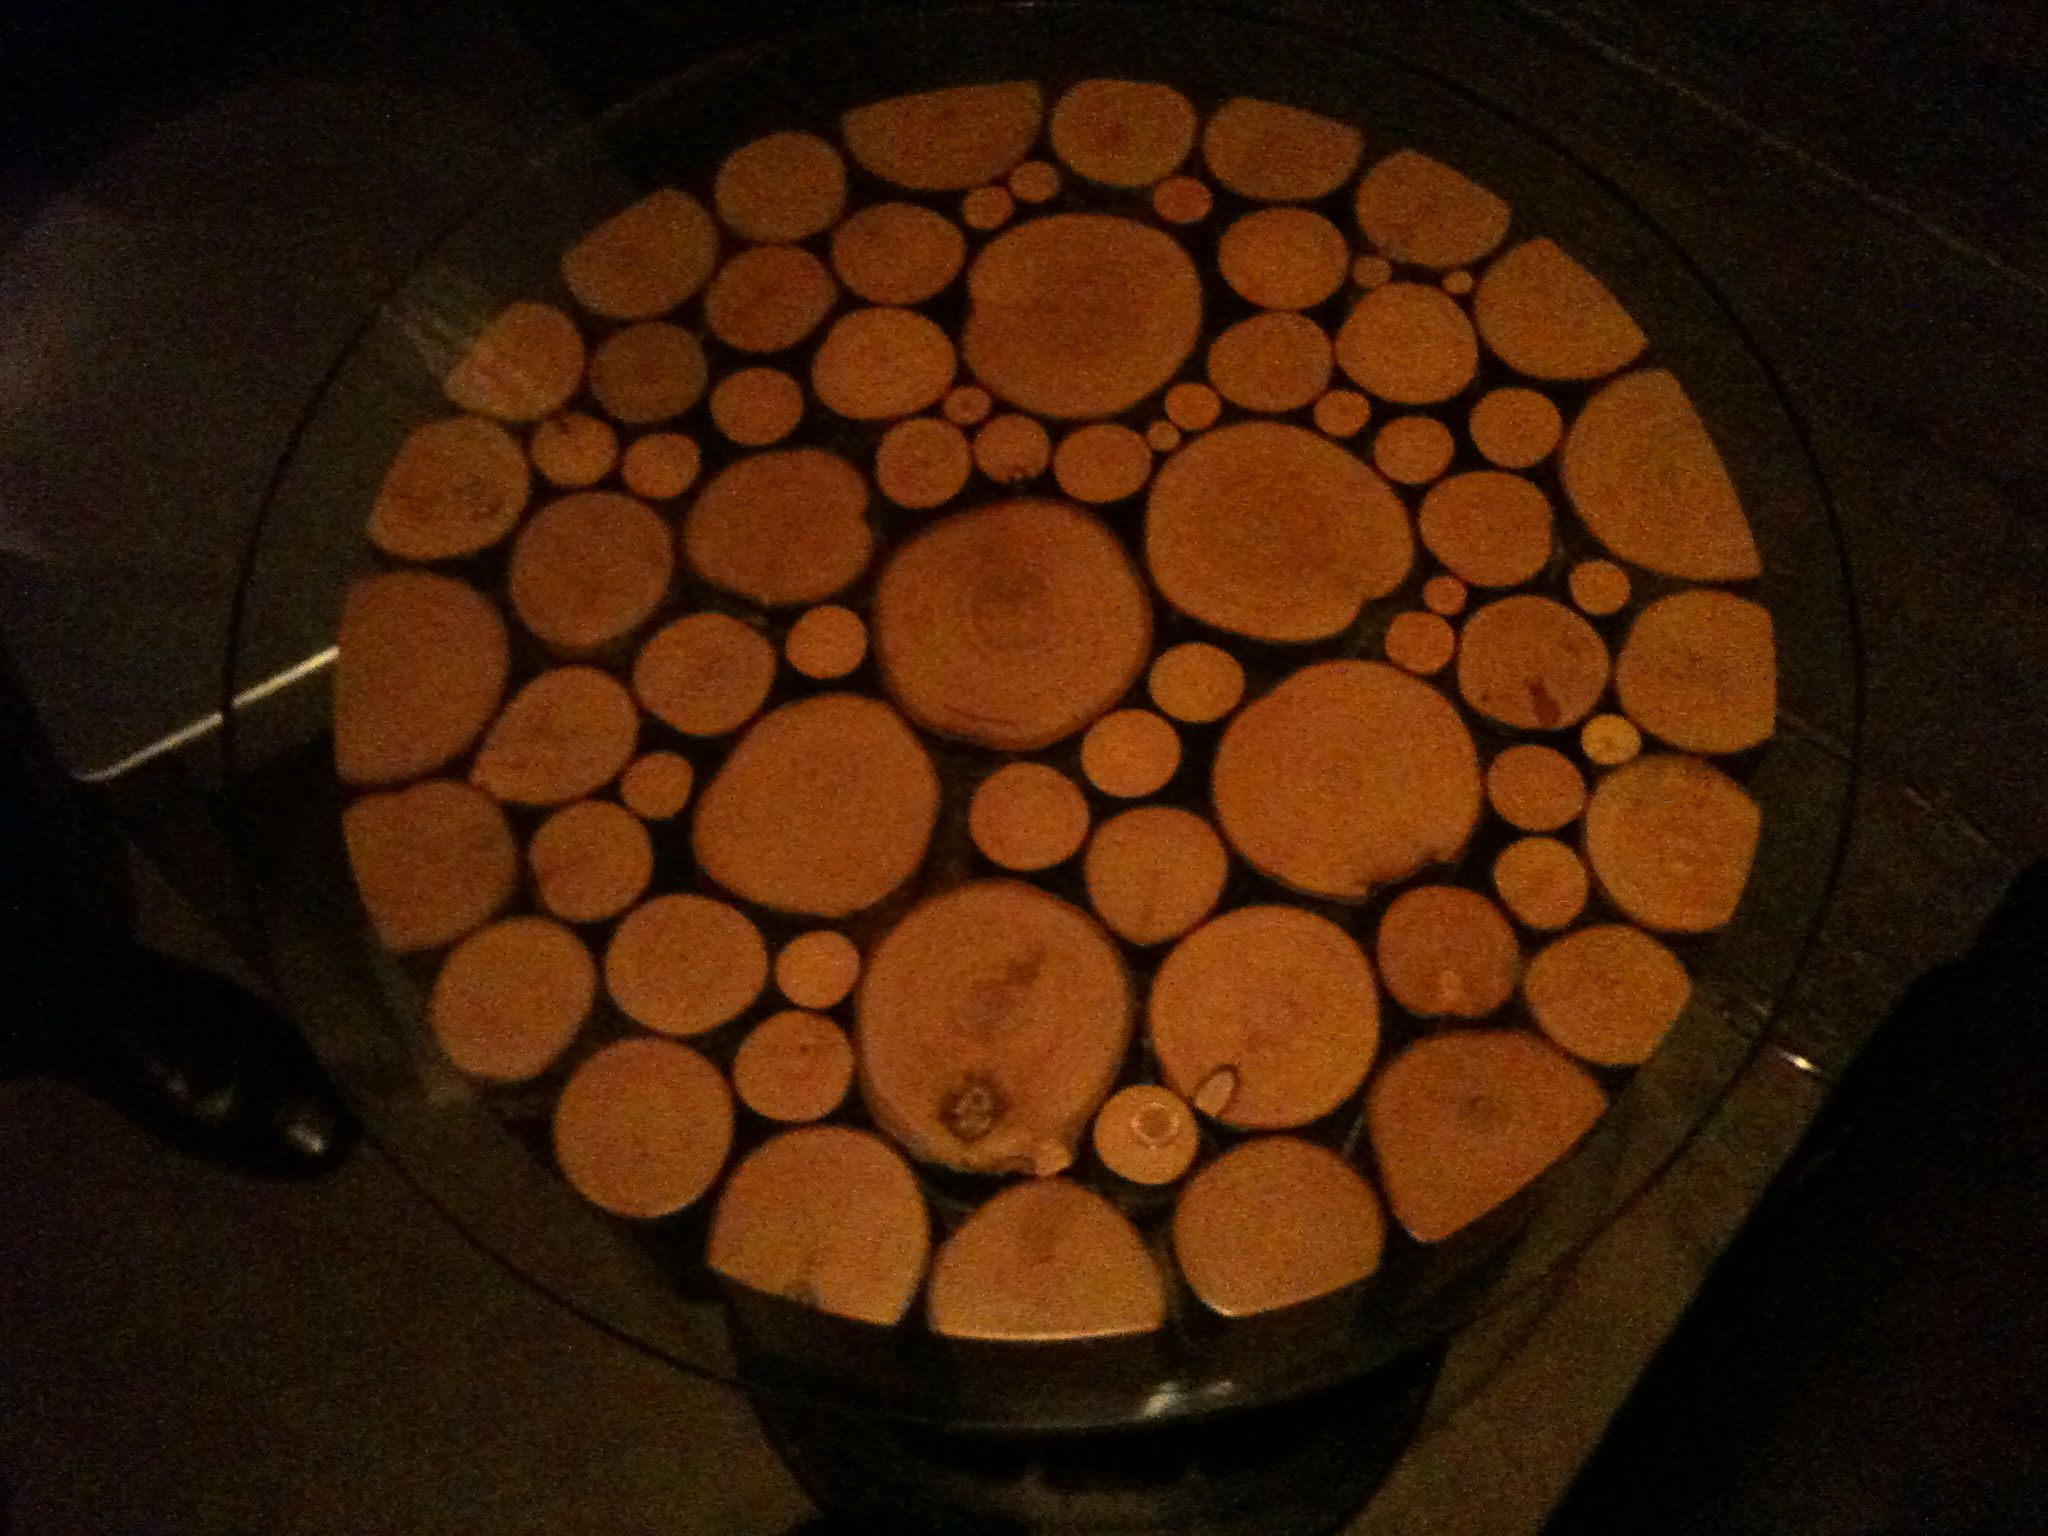 Superior The Table Tops At Salt Were Made From Cross Sections Of Tree Branches.